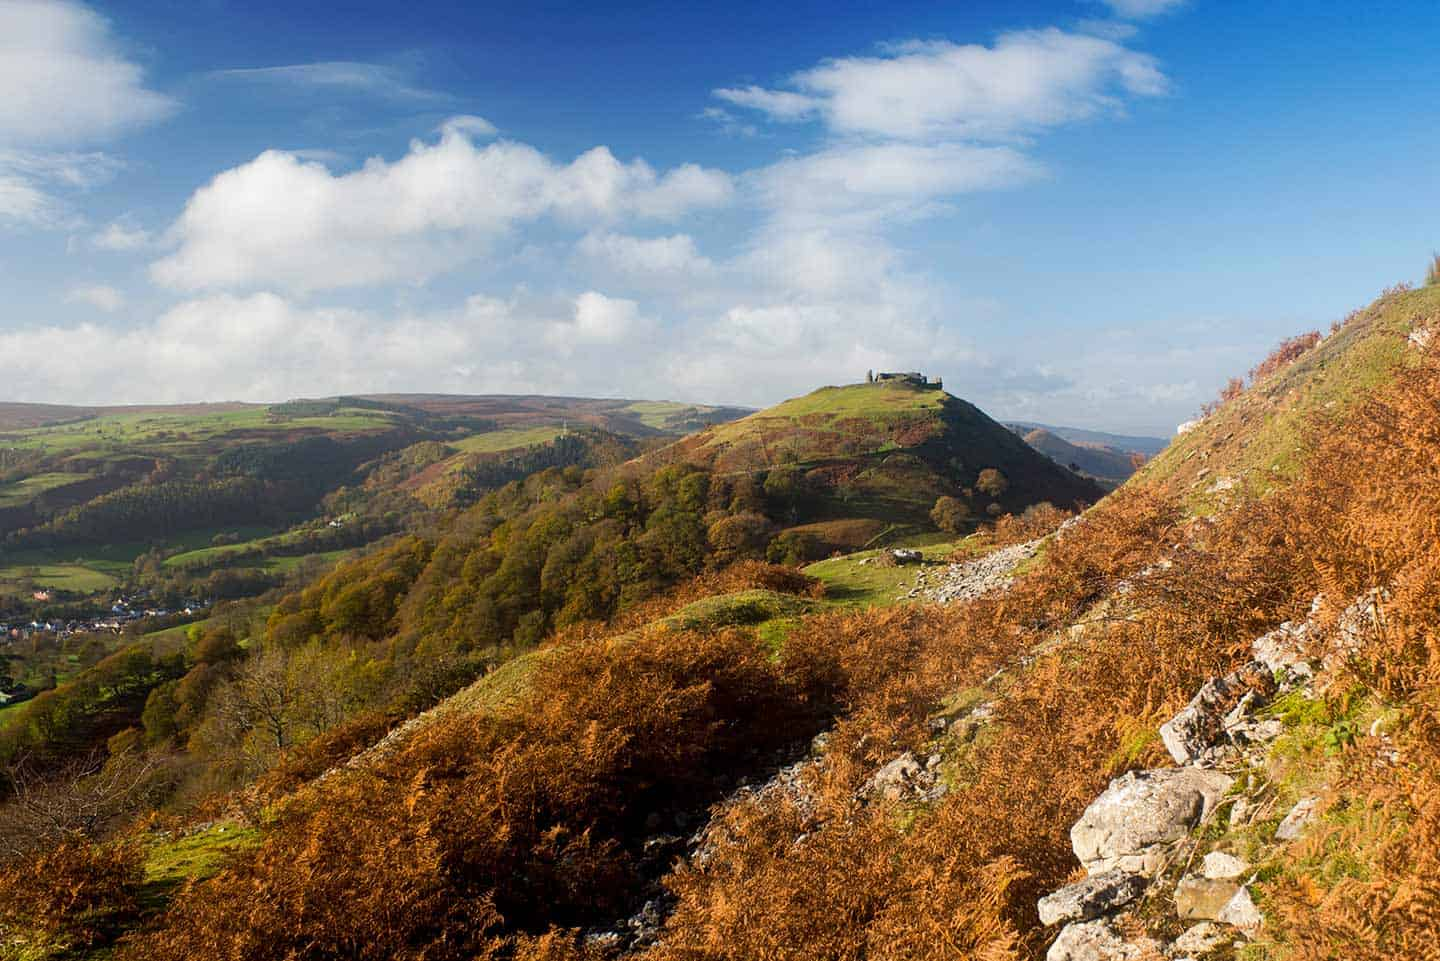 Image of the ruined hilltop Castell Dinas Bran above Llangollen